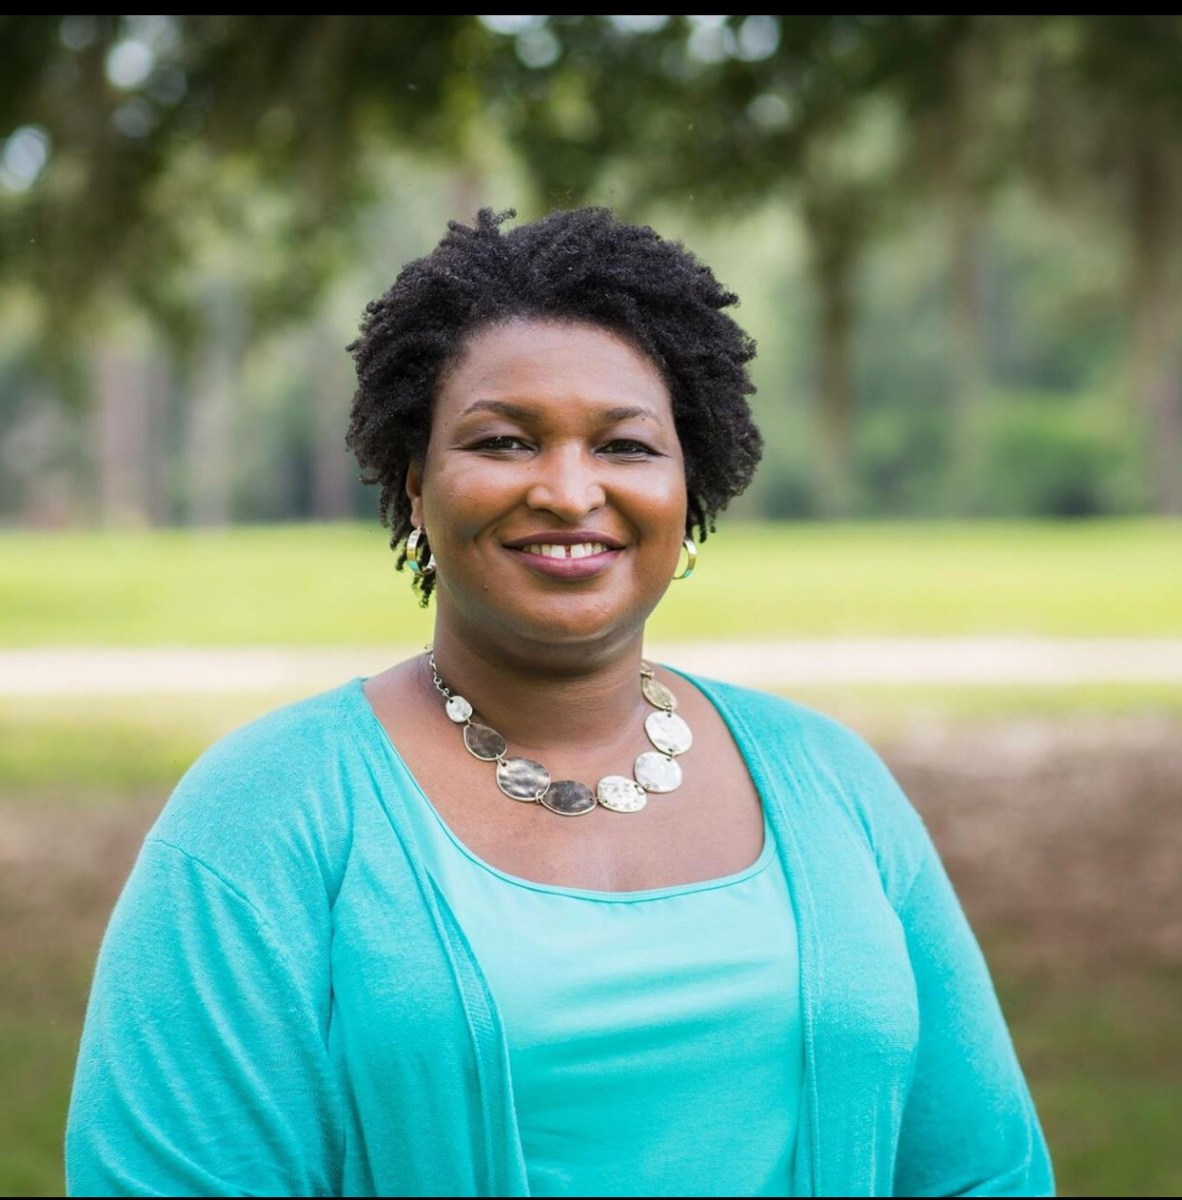 Stacey Abrams Proves In The Face Of Adversity, We All Should Keep Going